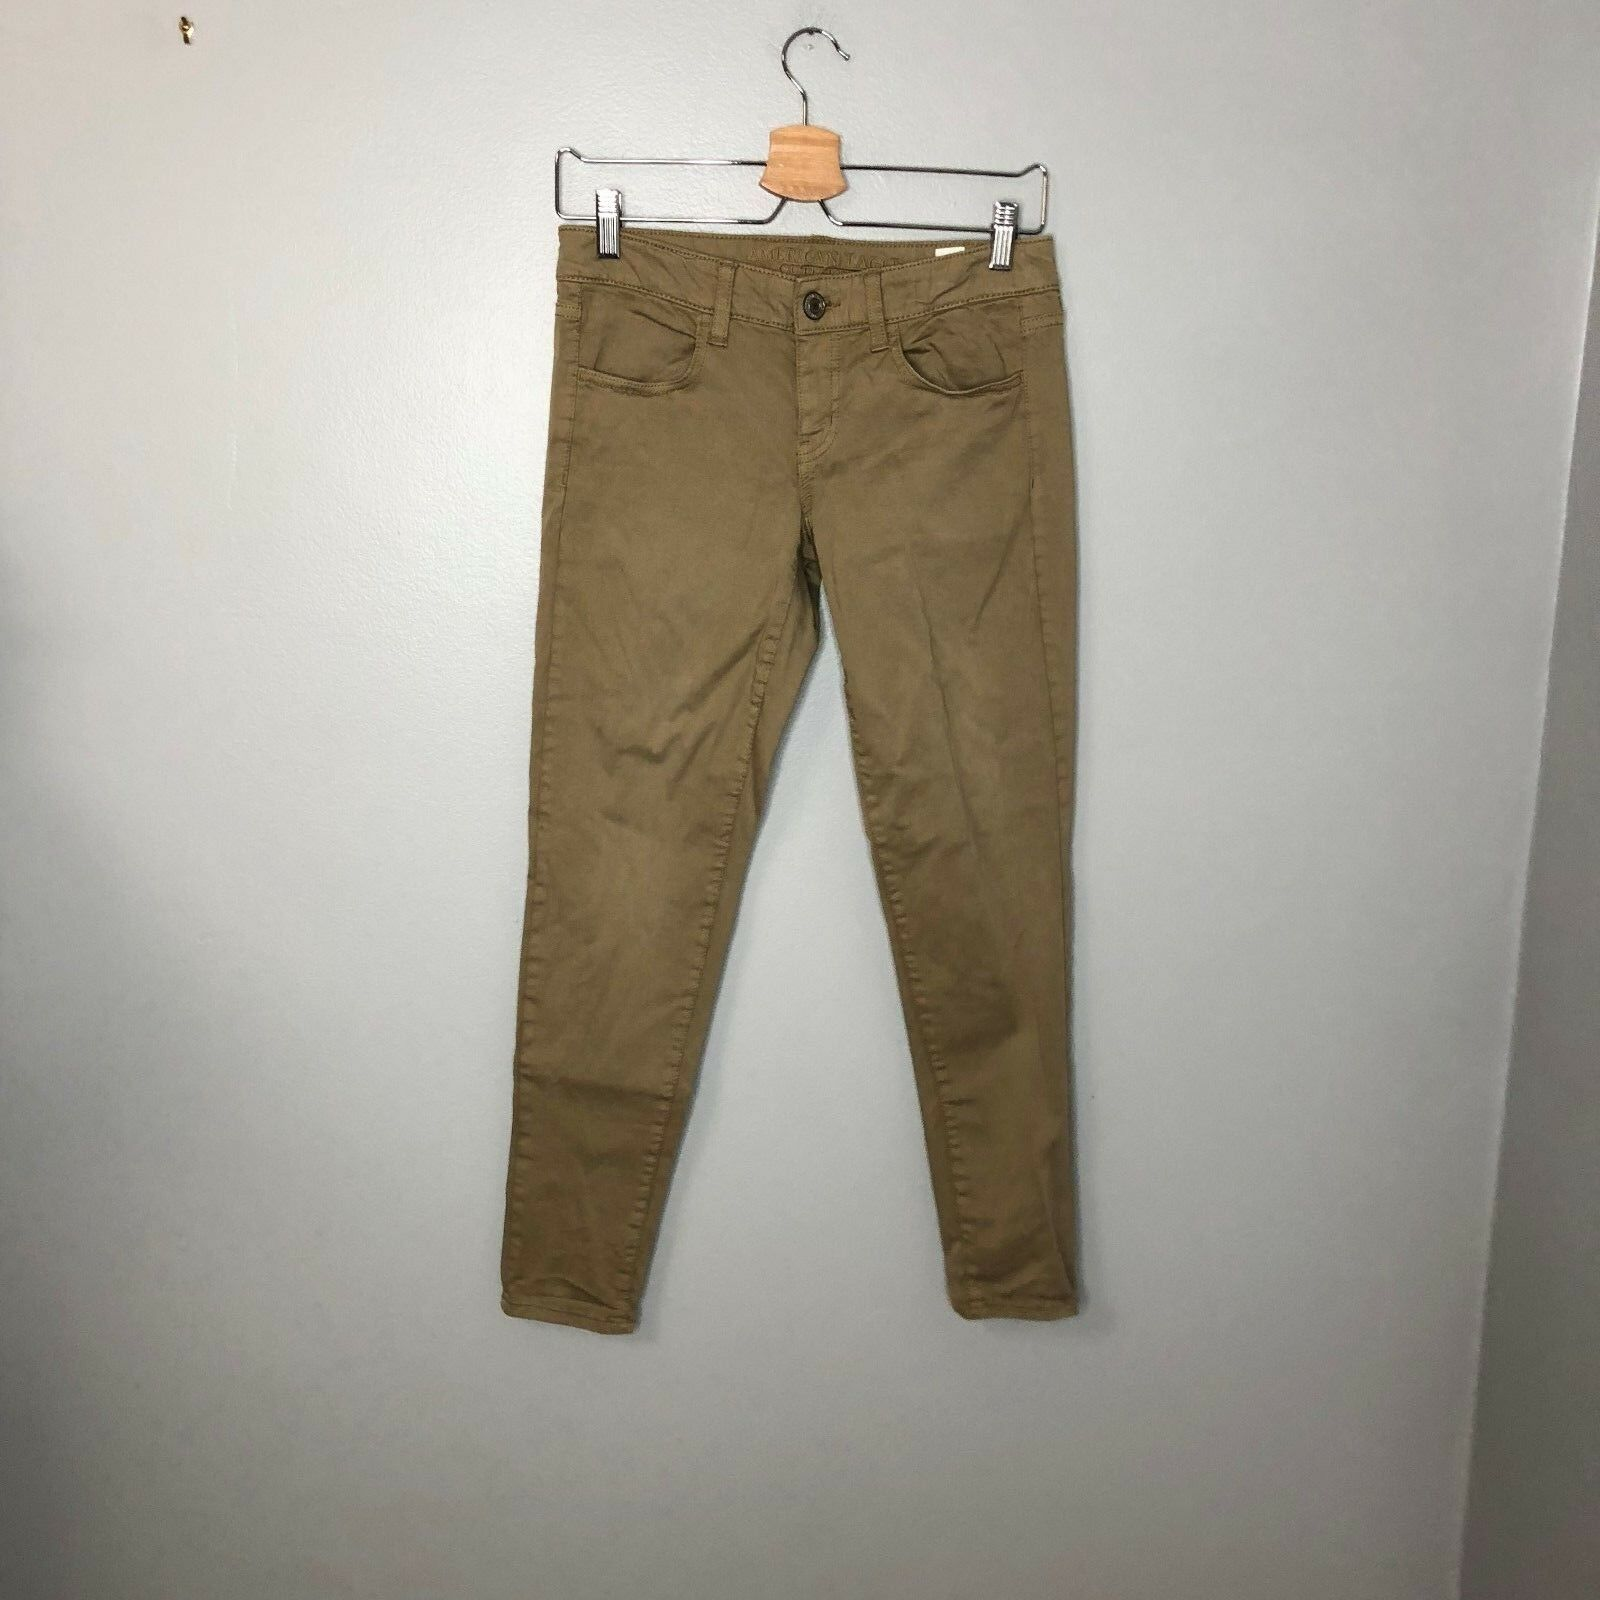 American Eagle Outfitters Tan Jeggings Jeans Sz 4 Short Womens Super Stretch